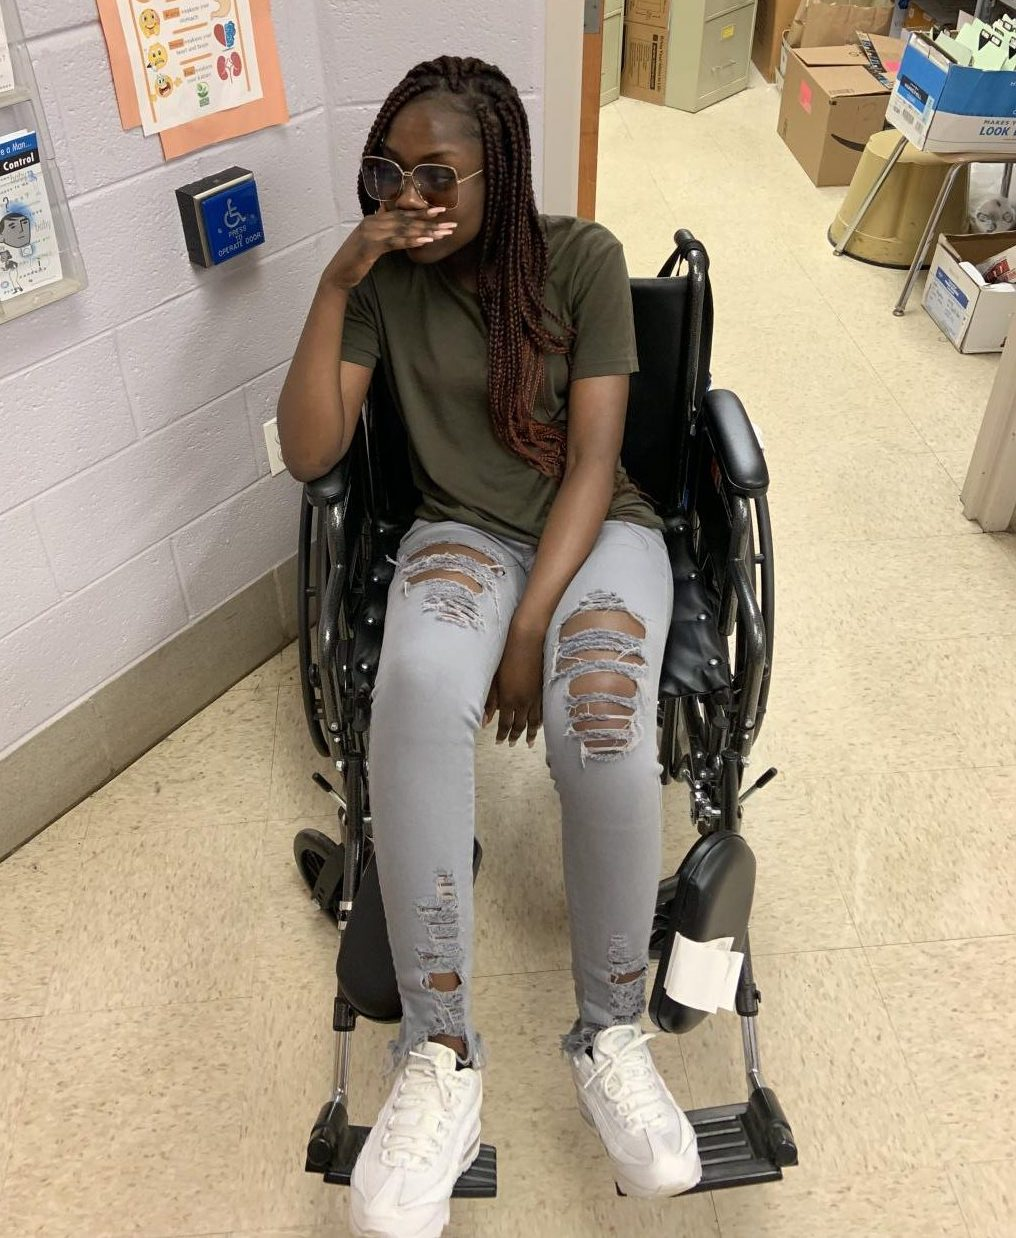 Janice Asabere in a wheelchair after being severely affected by senioritis